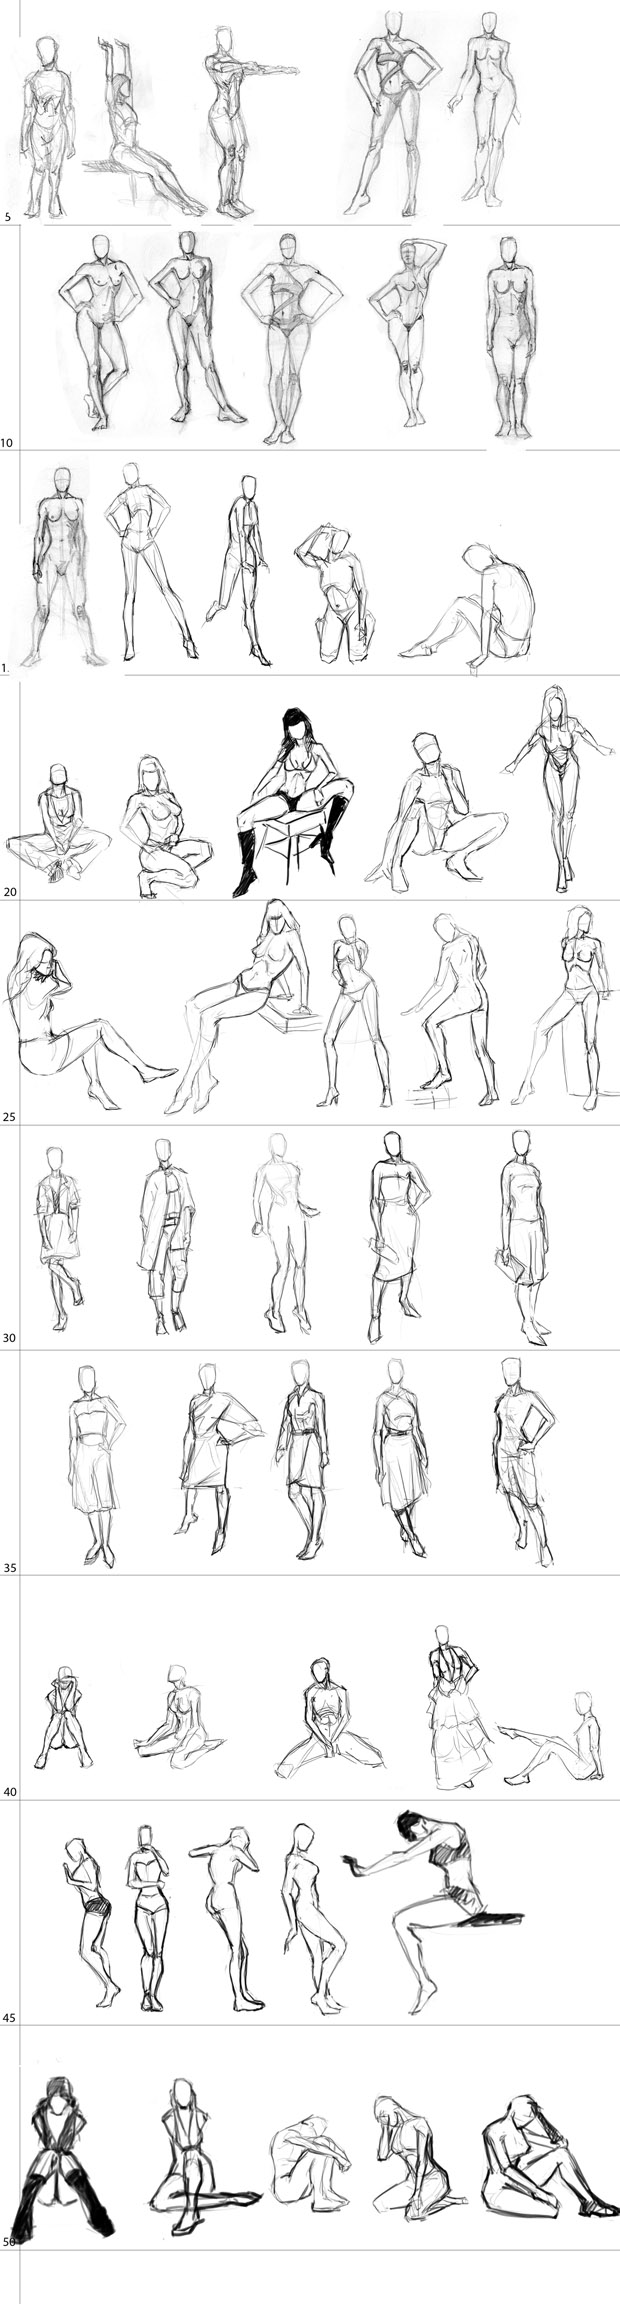 "Spartan Camp #29 - 50 gestures + Optional Study of Action ""RAGE"""